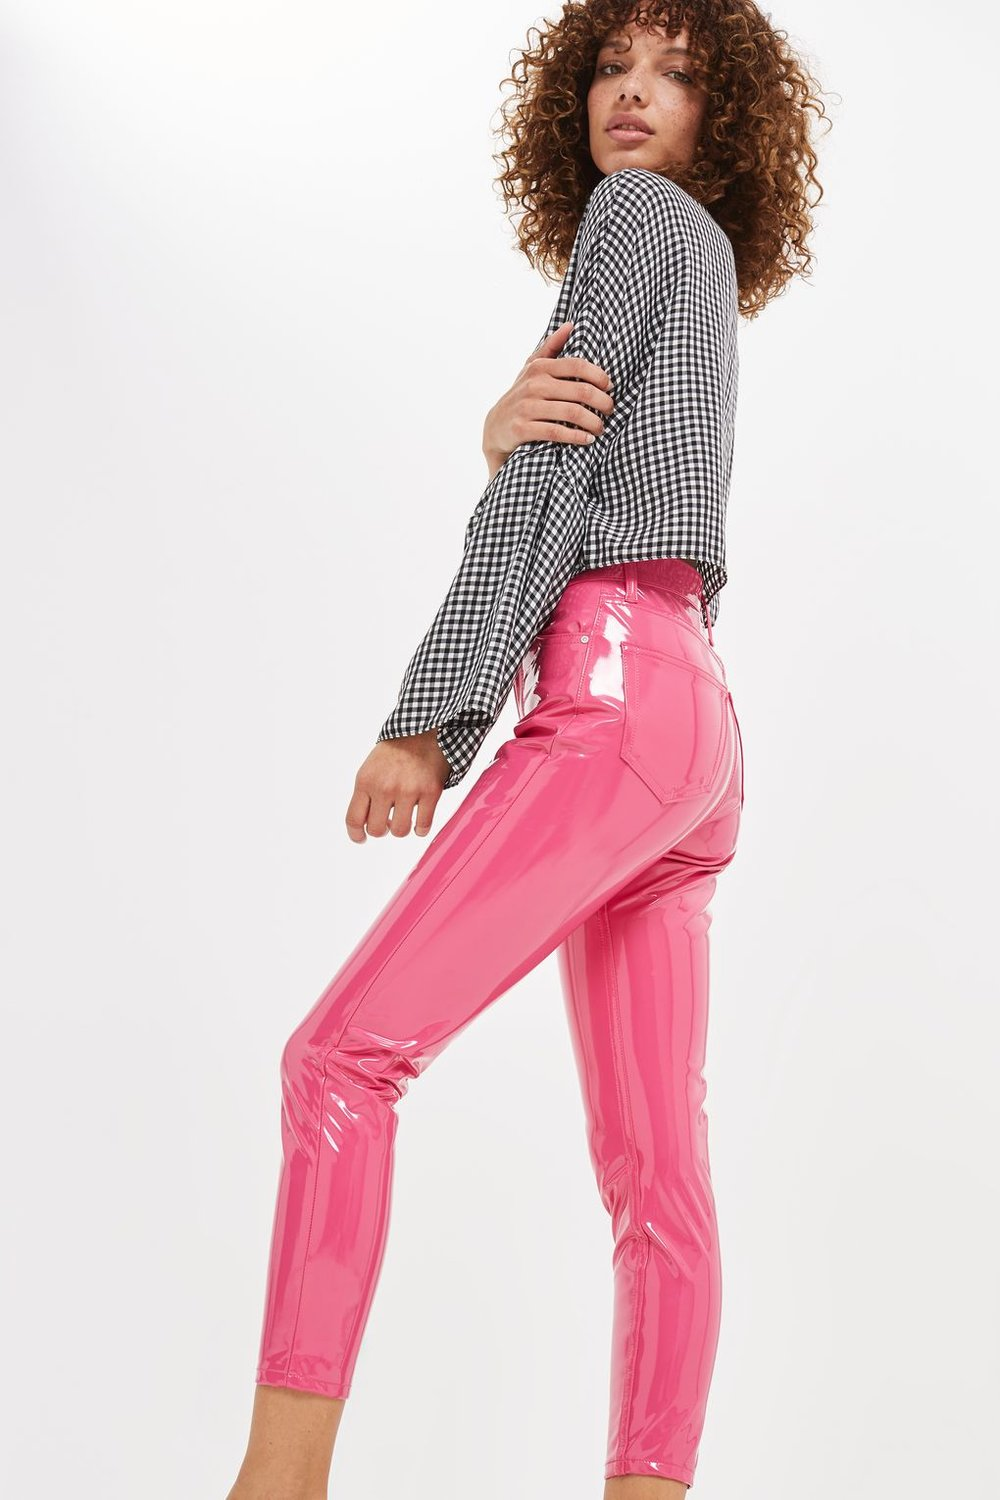 4. Topshop Pink Vinyl Jamie Jeans - First, there was the baby pink vinyl pencil skirt, now there are the bubblegum pink vinyl 'jeans'. Just imagine the noise you'll make when you're walking...